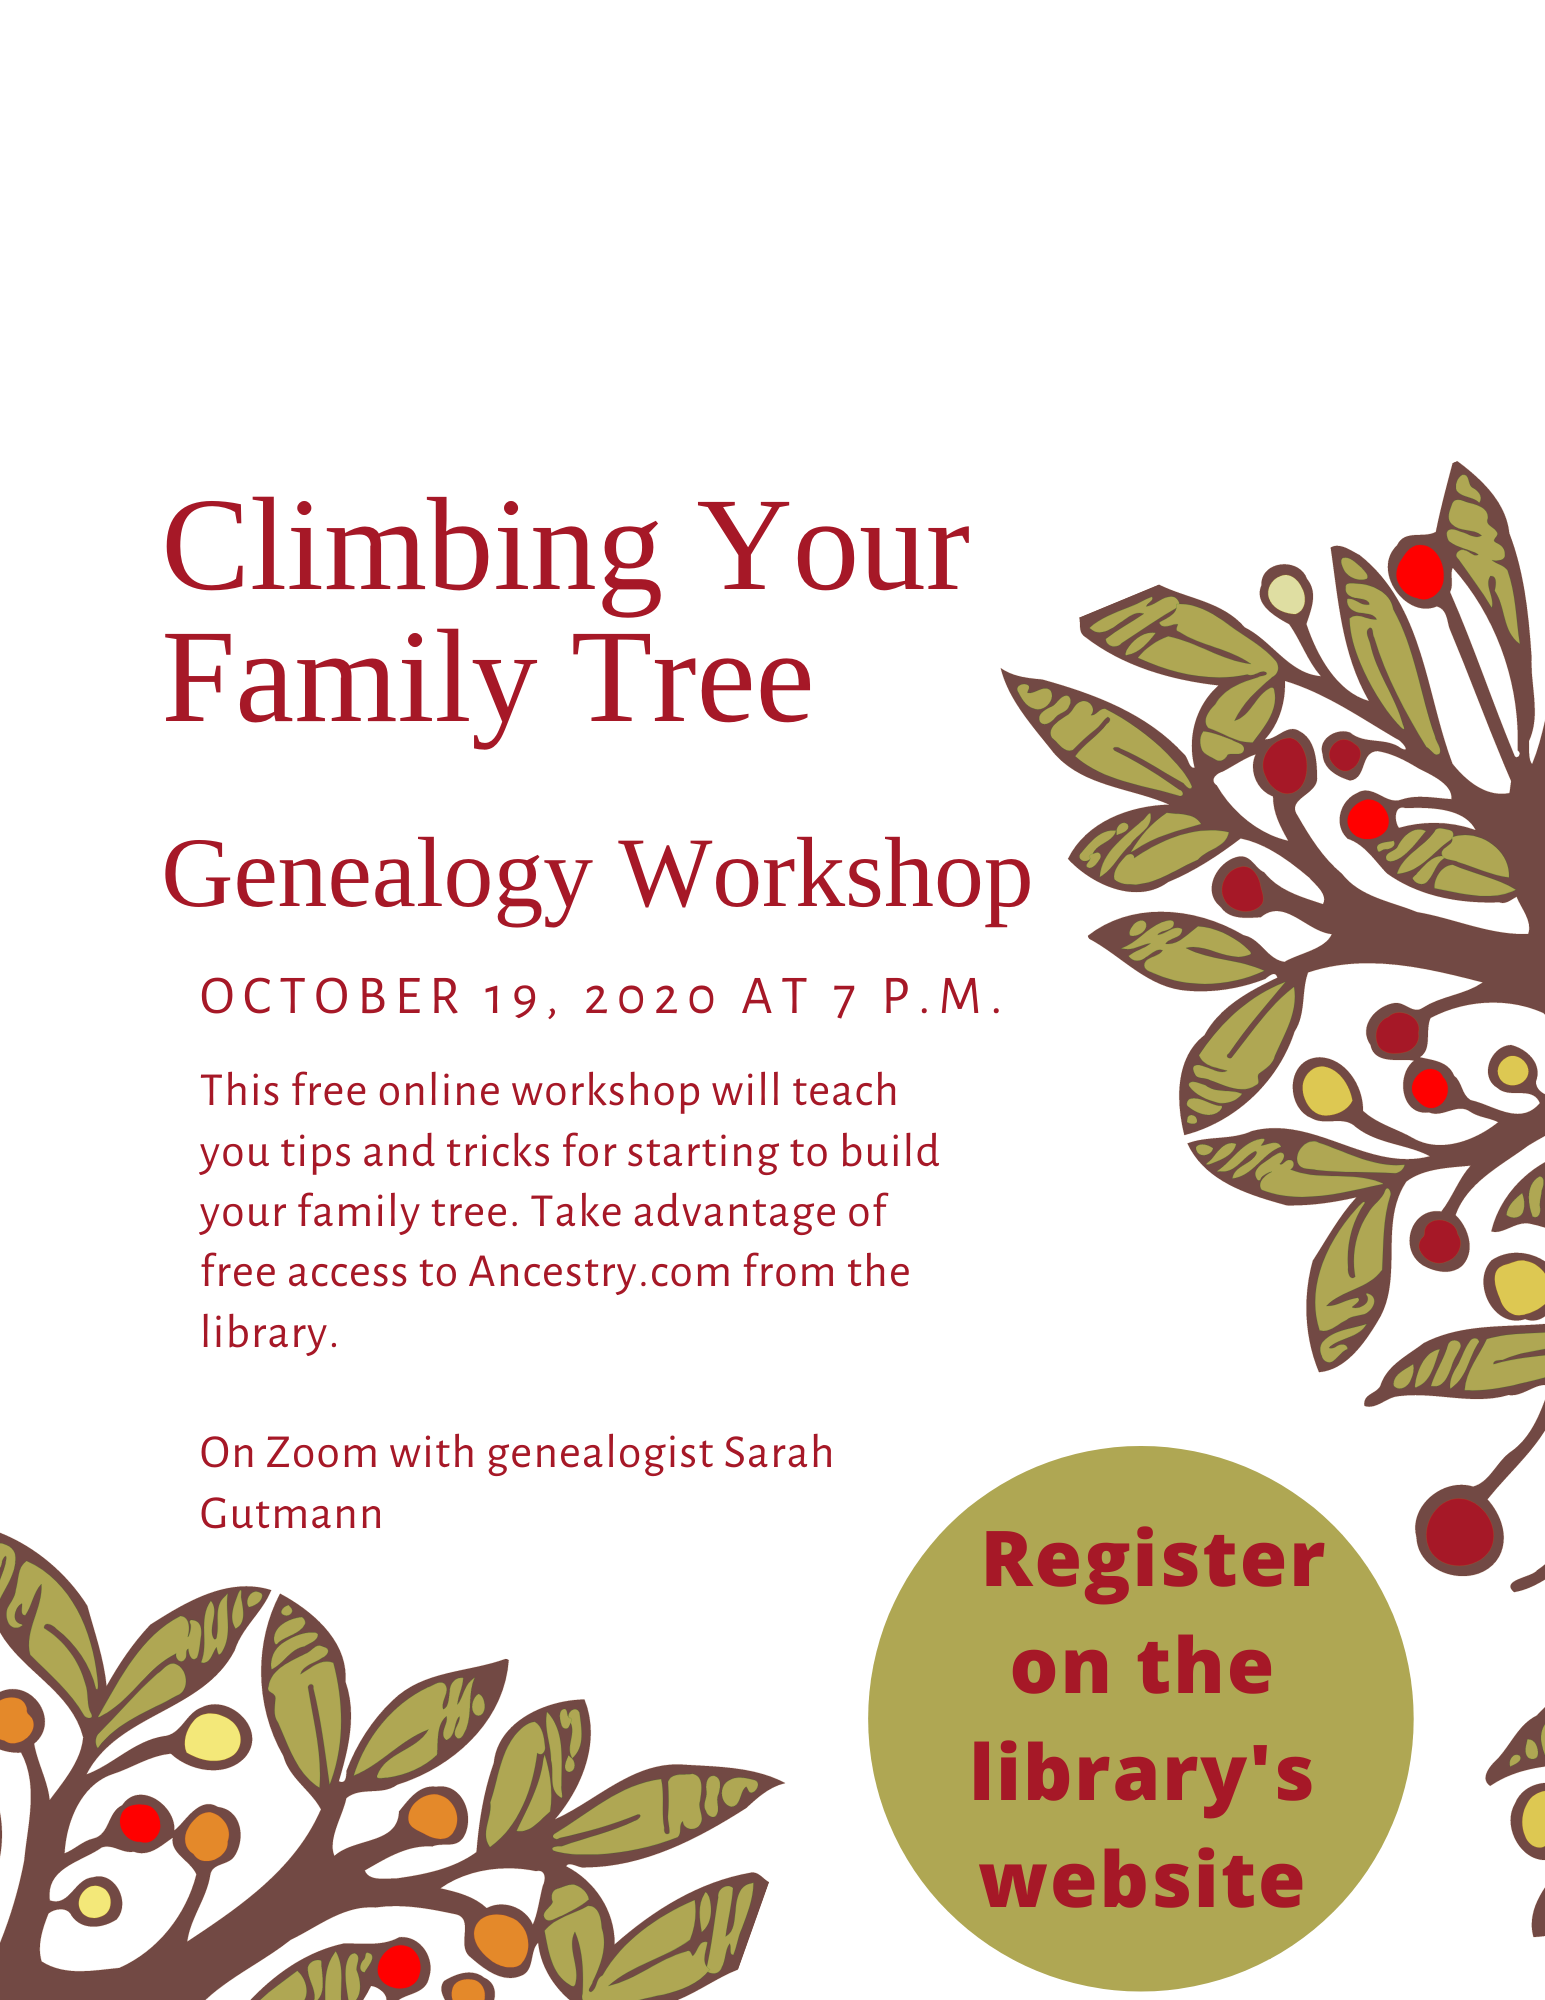 Start Climbing Your Family Tree: An Introduction To Genealogy